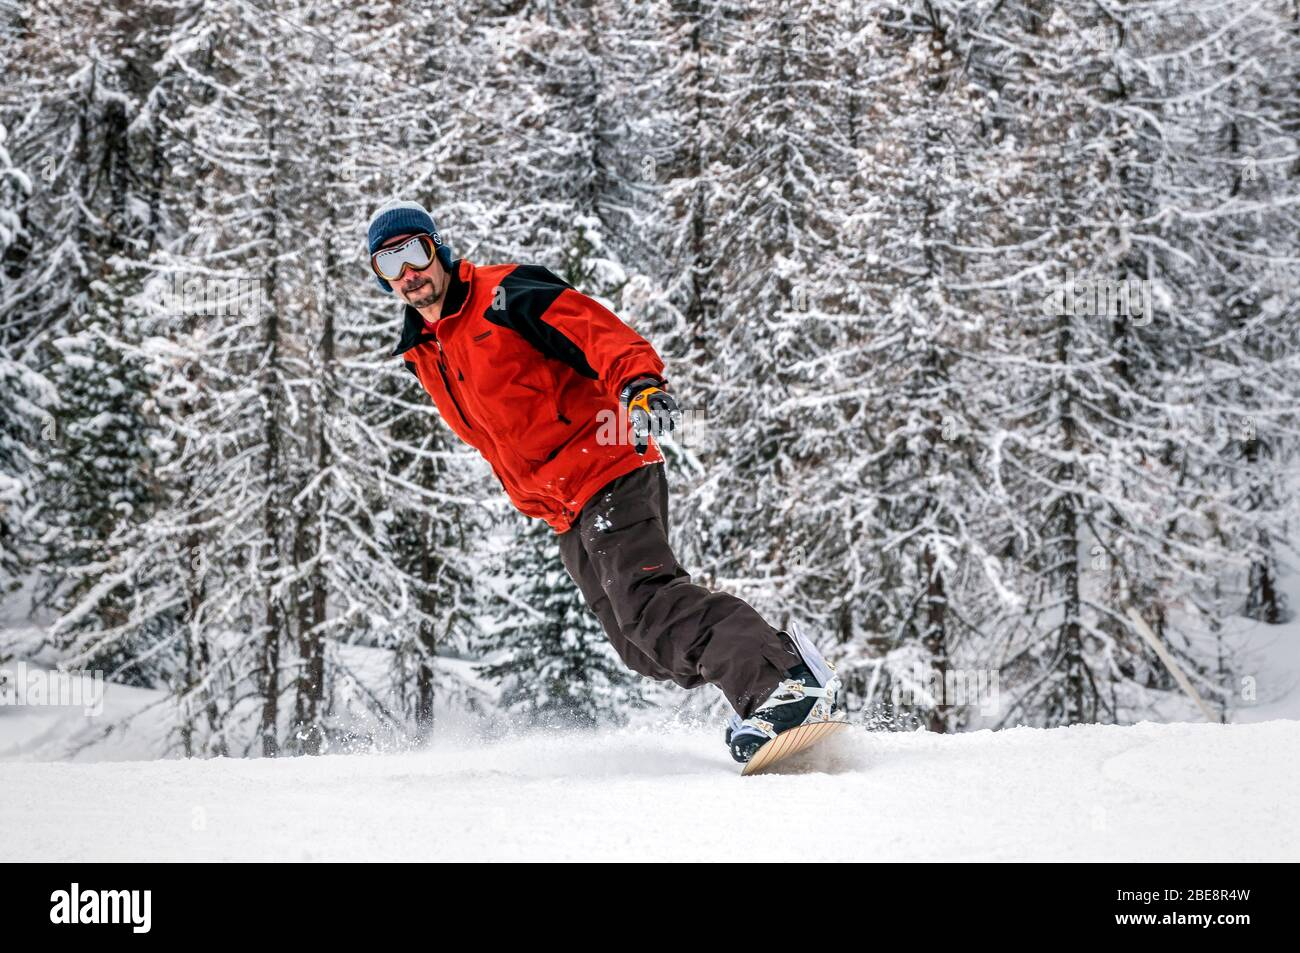 Snowboarder in La Thuile, Aosta Valley, Italy Stock Photo